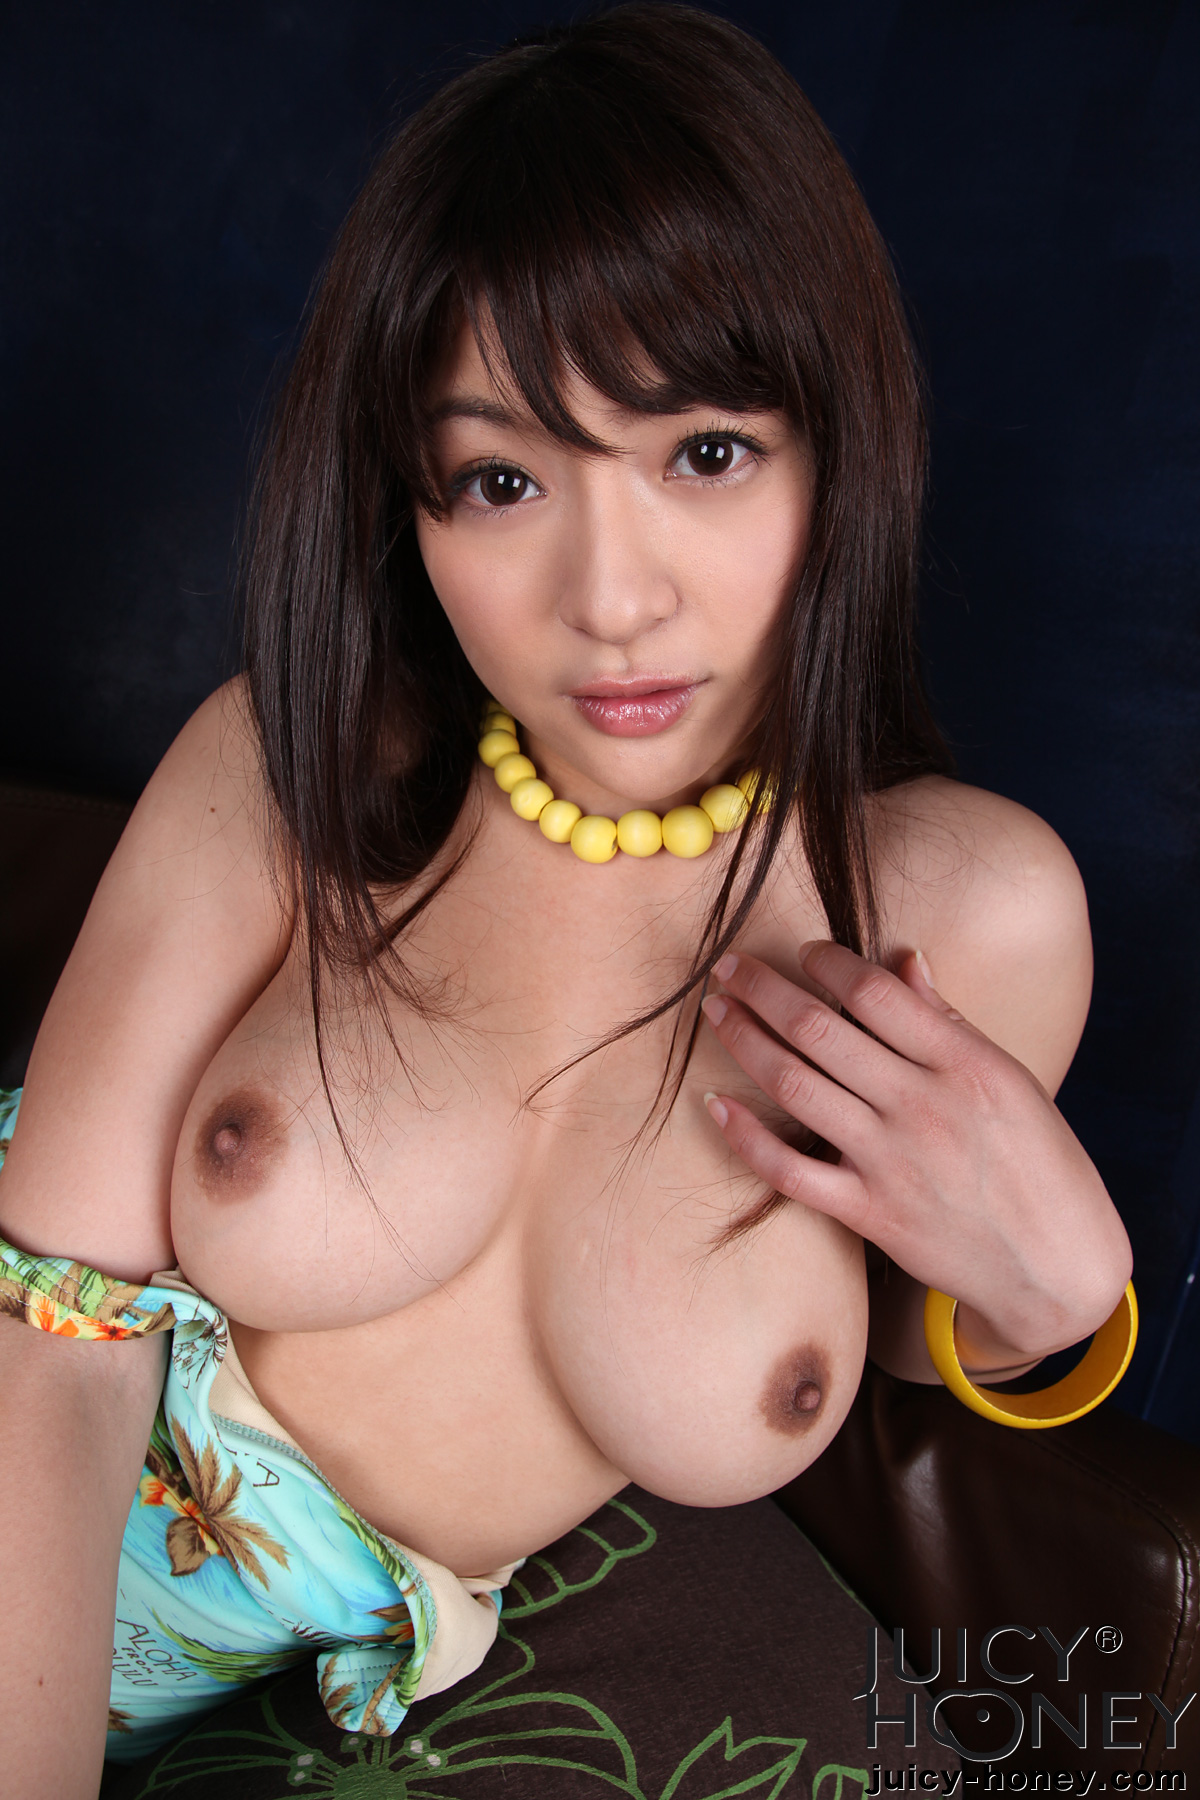 Japanese-former-gravure-idol-Megu-Fujiura-015-from-sexvcl.net_ Japanese former gravure idol Megu Fujiura めぐり leaked nude sexy